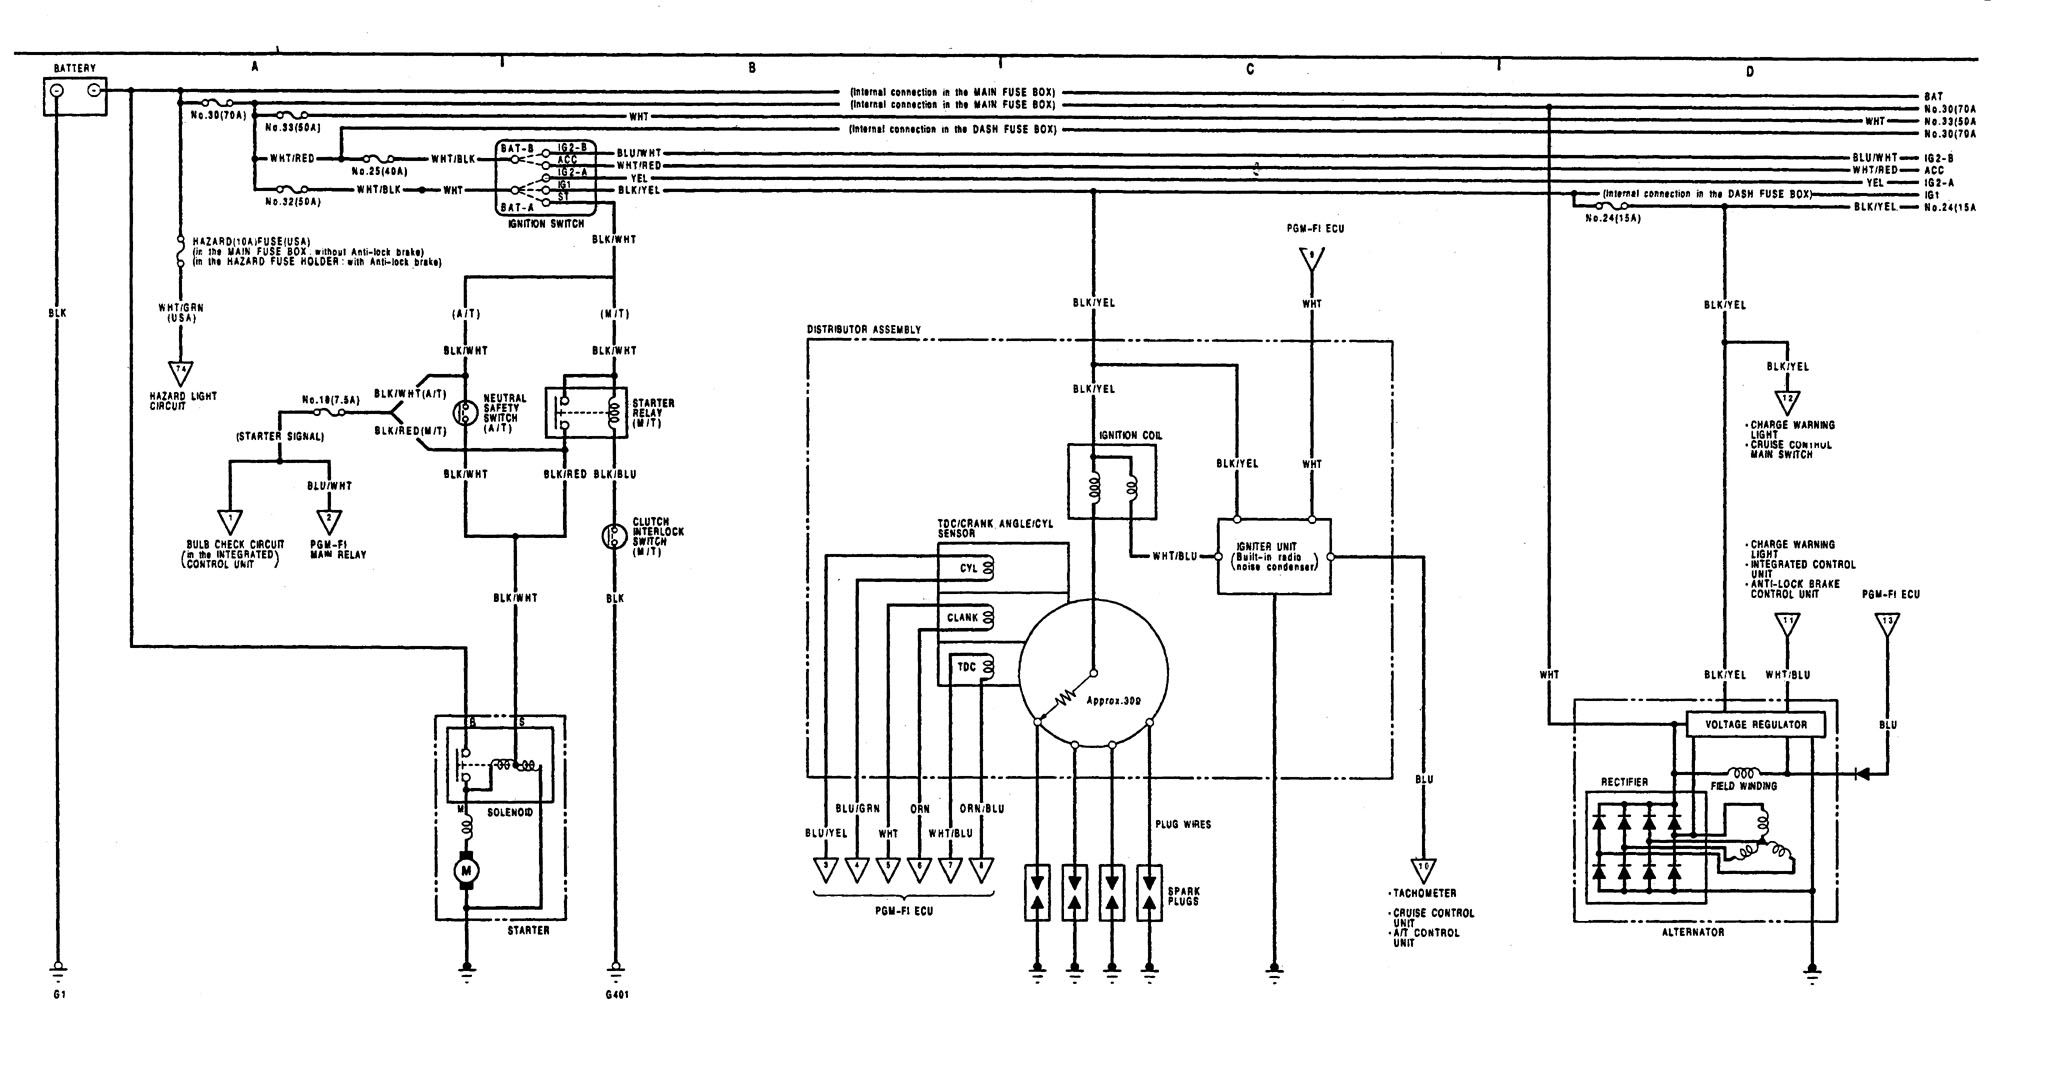 Acura Integra (1991) - wiring diagrams - starting - CARKNOWLEDGE on acura integra ignition diagram, 91 camry wiring diagram, 00 acura integra fuel system diagram, 1994 acura integra starter diagram, for 91 crx vacuum diagram, 00 integra engine sensor diagram, 91 civic wiring diagram, 91 mr2 wiring diagram, 91 integra cooling system, 91 accord wiring diagram, 91 integra rear suspension, 93 integra wiring diagram, 91 toyota wiring diagram, 1991 integra wiring diagram, 91 integra timing marks, 91 camaro wiring diagram, 91 mustang wiring diagram, 91 integra ls ecu pinout, 91 mazda wiring diagram,